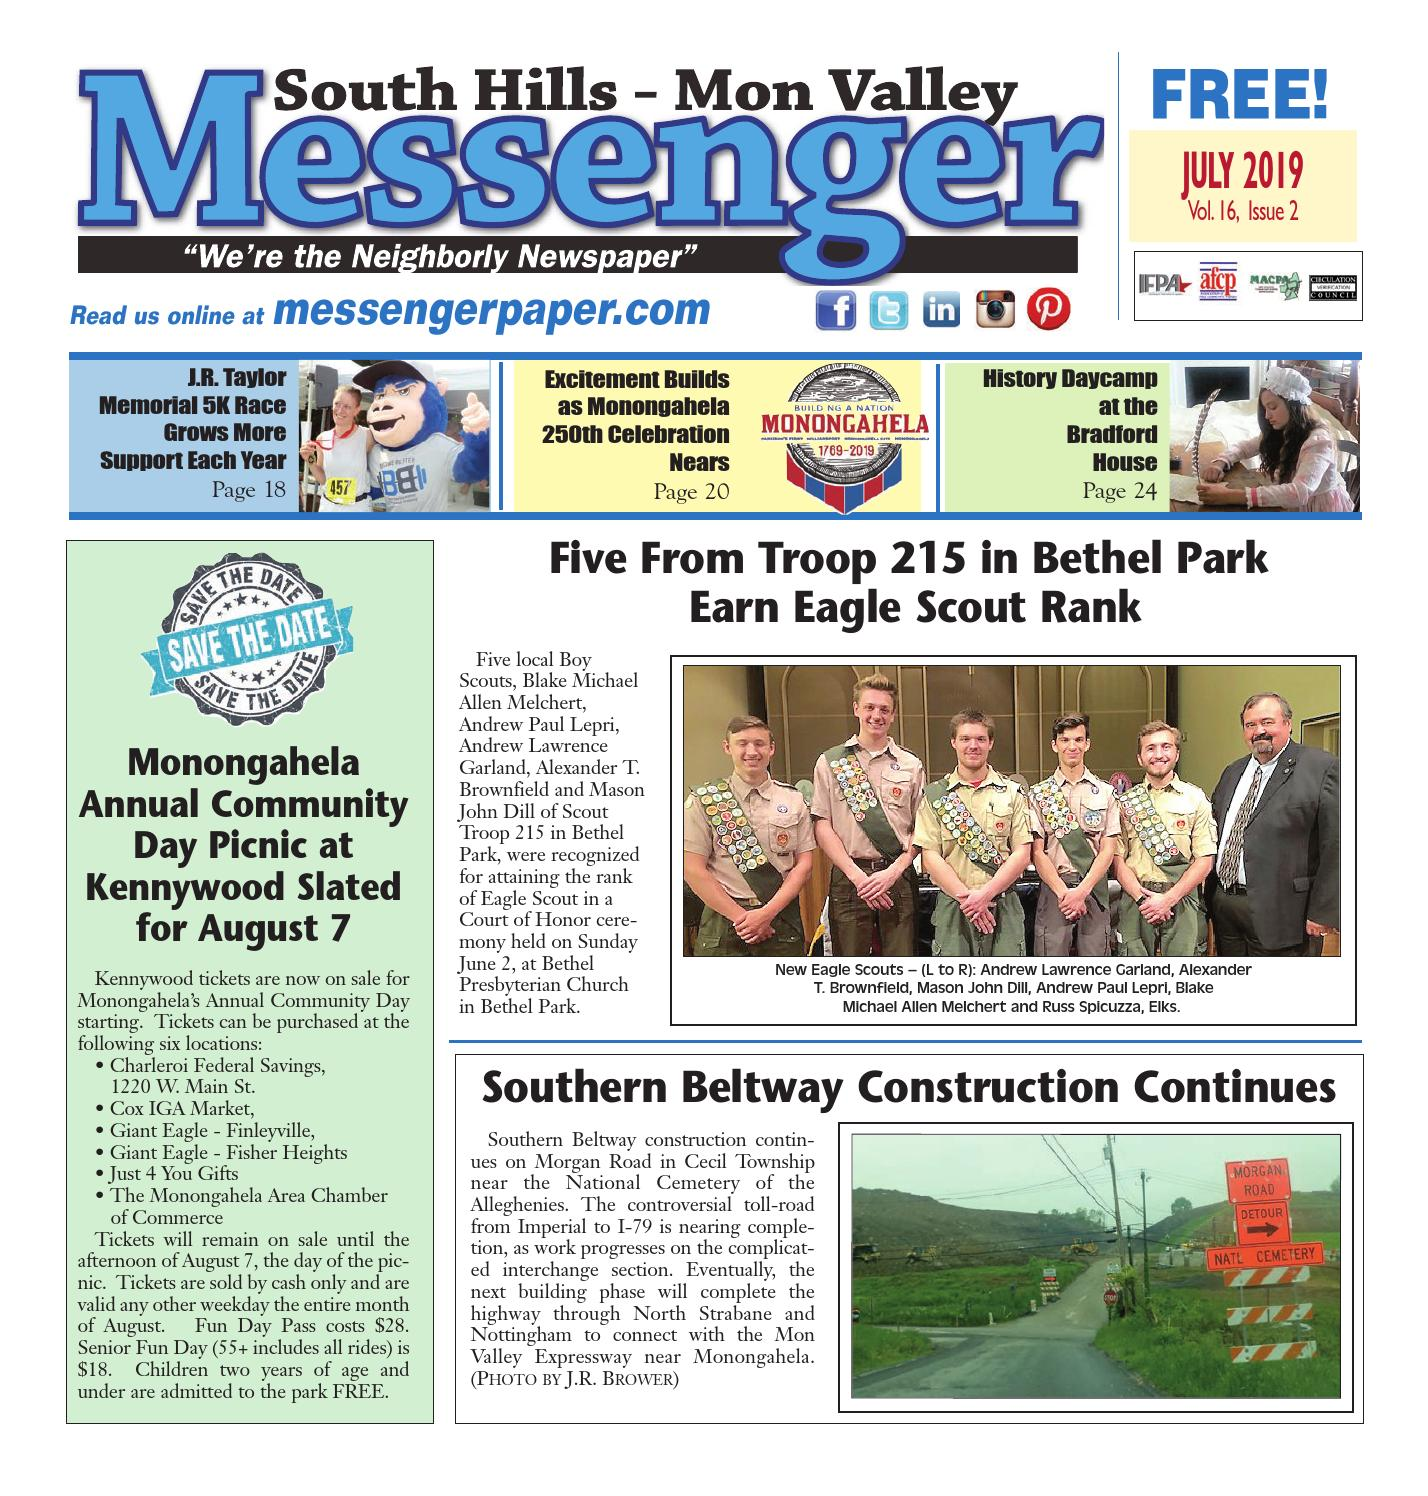 South Hills Mon Valley Messenger July 2019 by South Hills